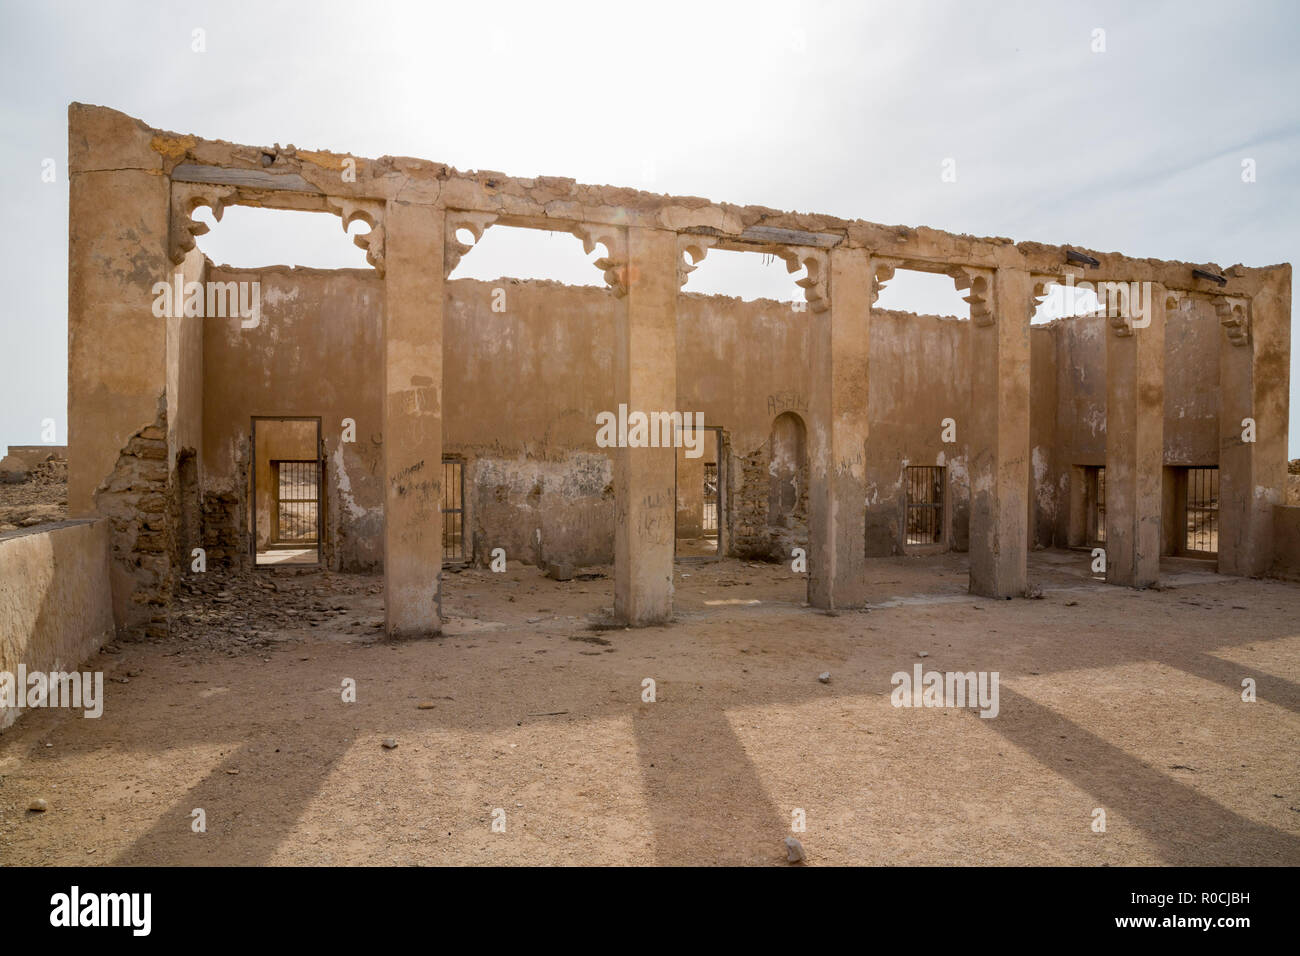 Inside the abandoned mosque. Ruined ancient old Arab pearling and fishing town Al Jumail, Qatar. The desert at coast of Persian Gulf. Deserted village - Stock Image